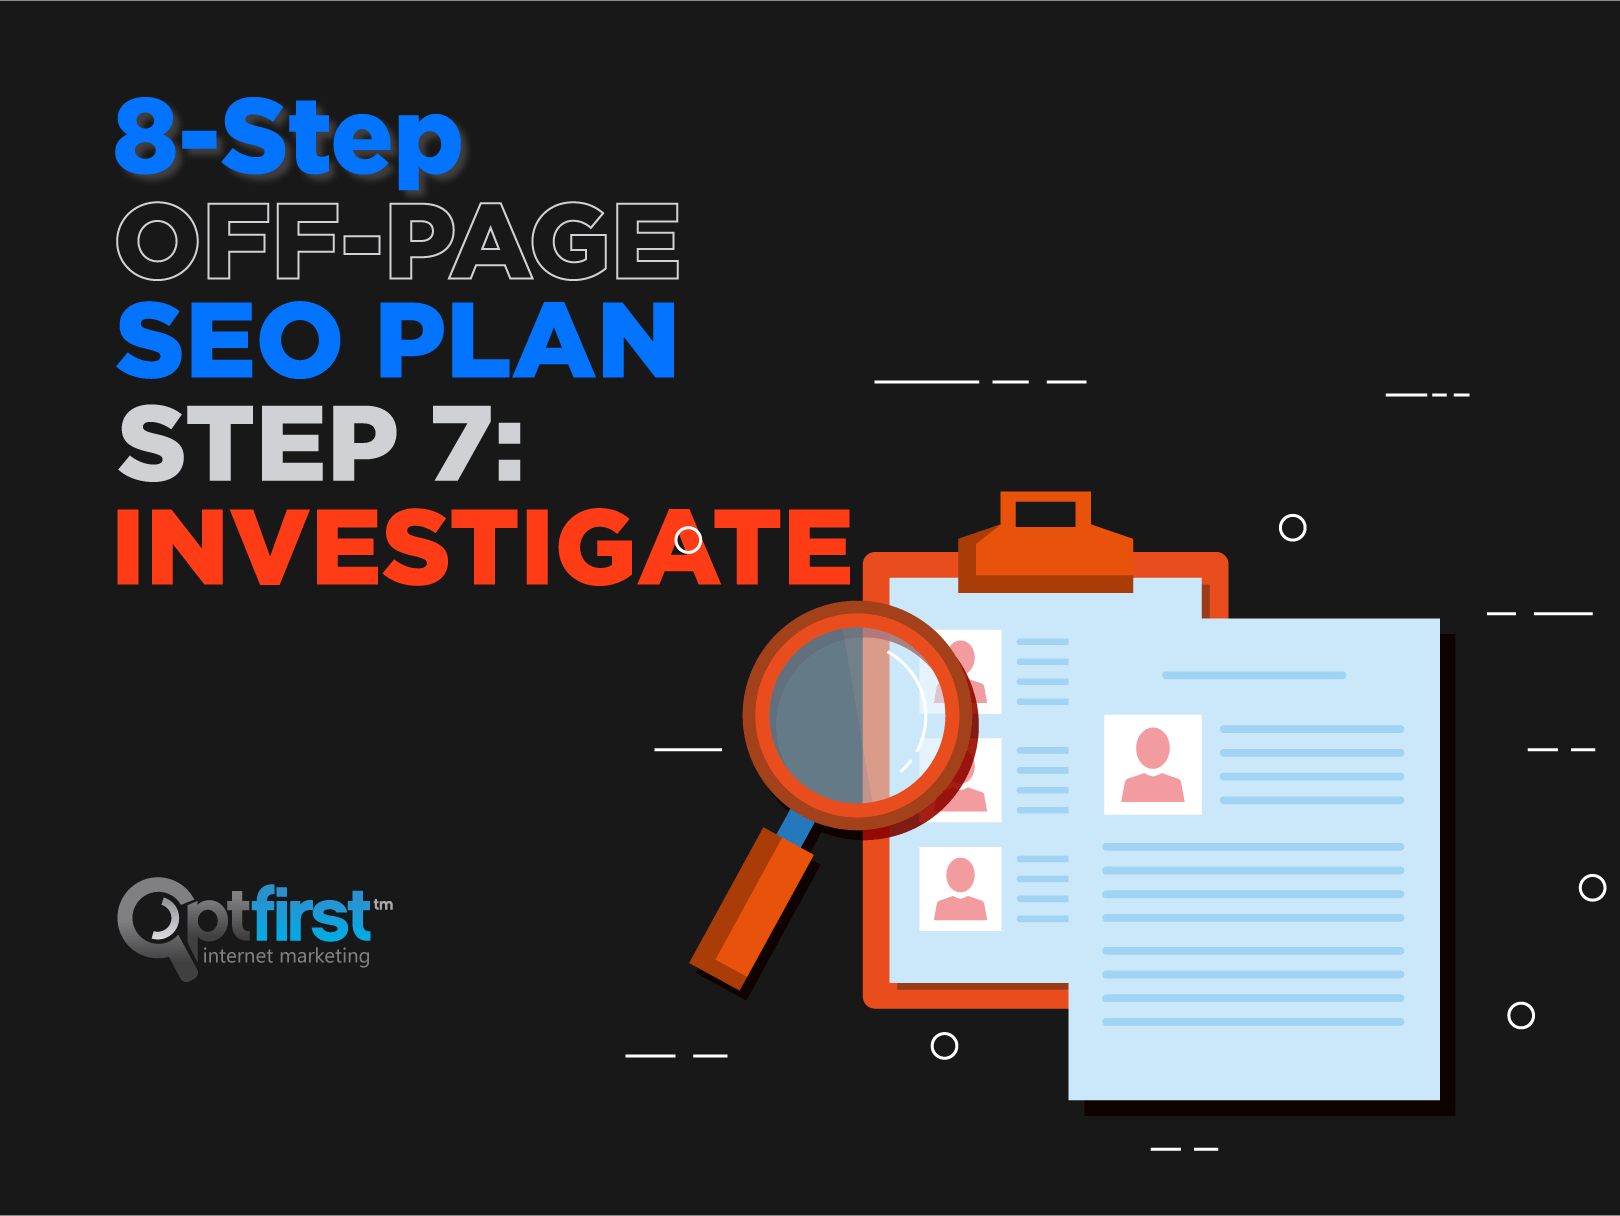 8-Step Off-Page SEO Plan, Step 7: Investigate